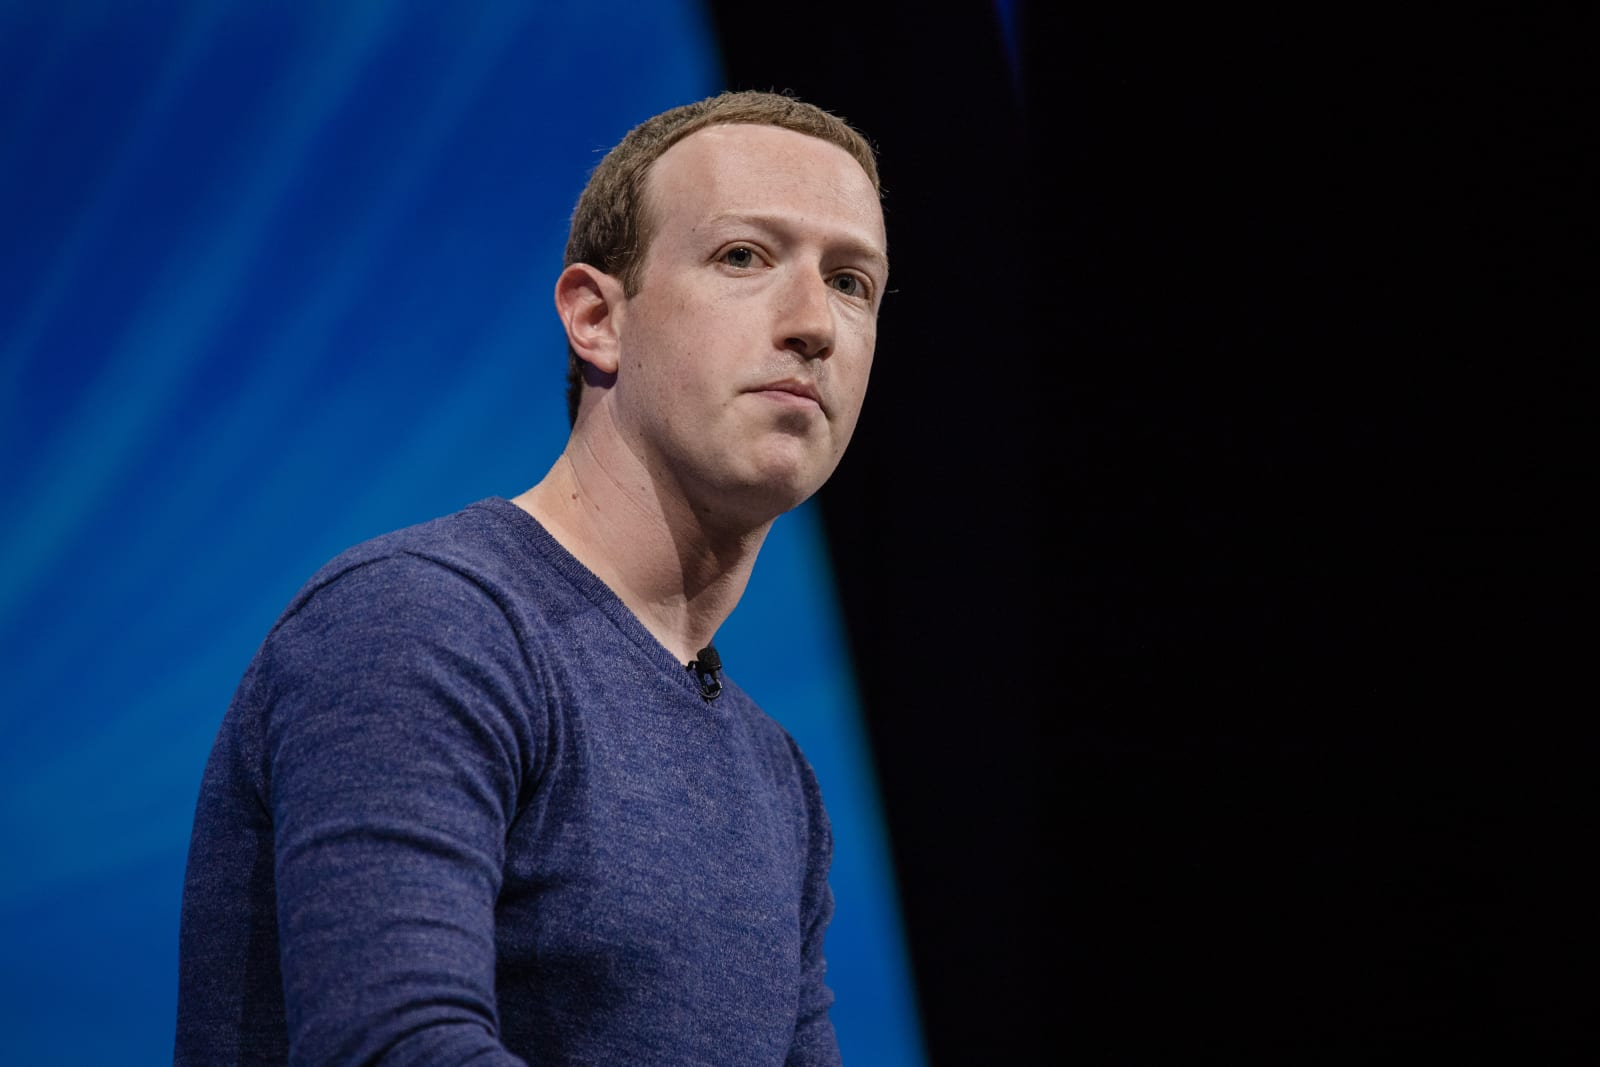 Facebook's Mark Zuckerberg proposes four ways to regulate the internet